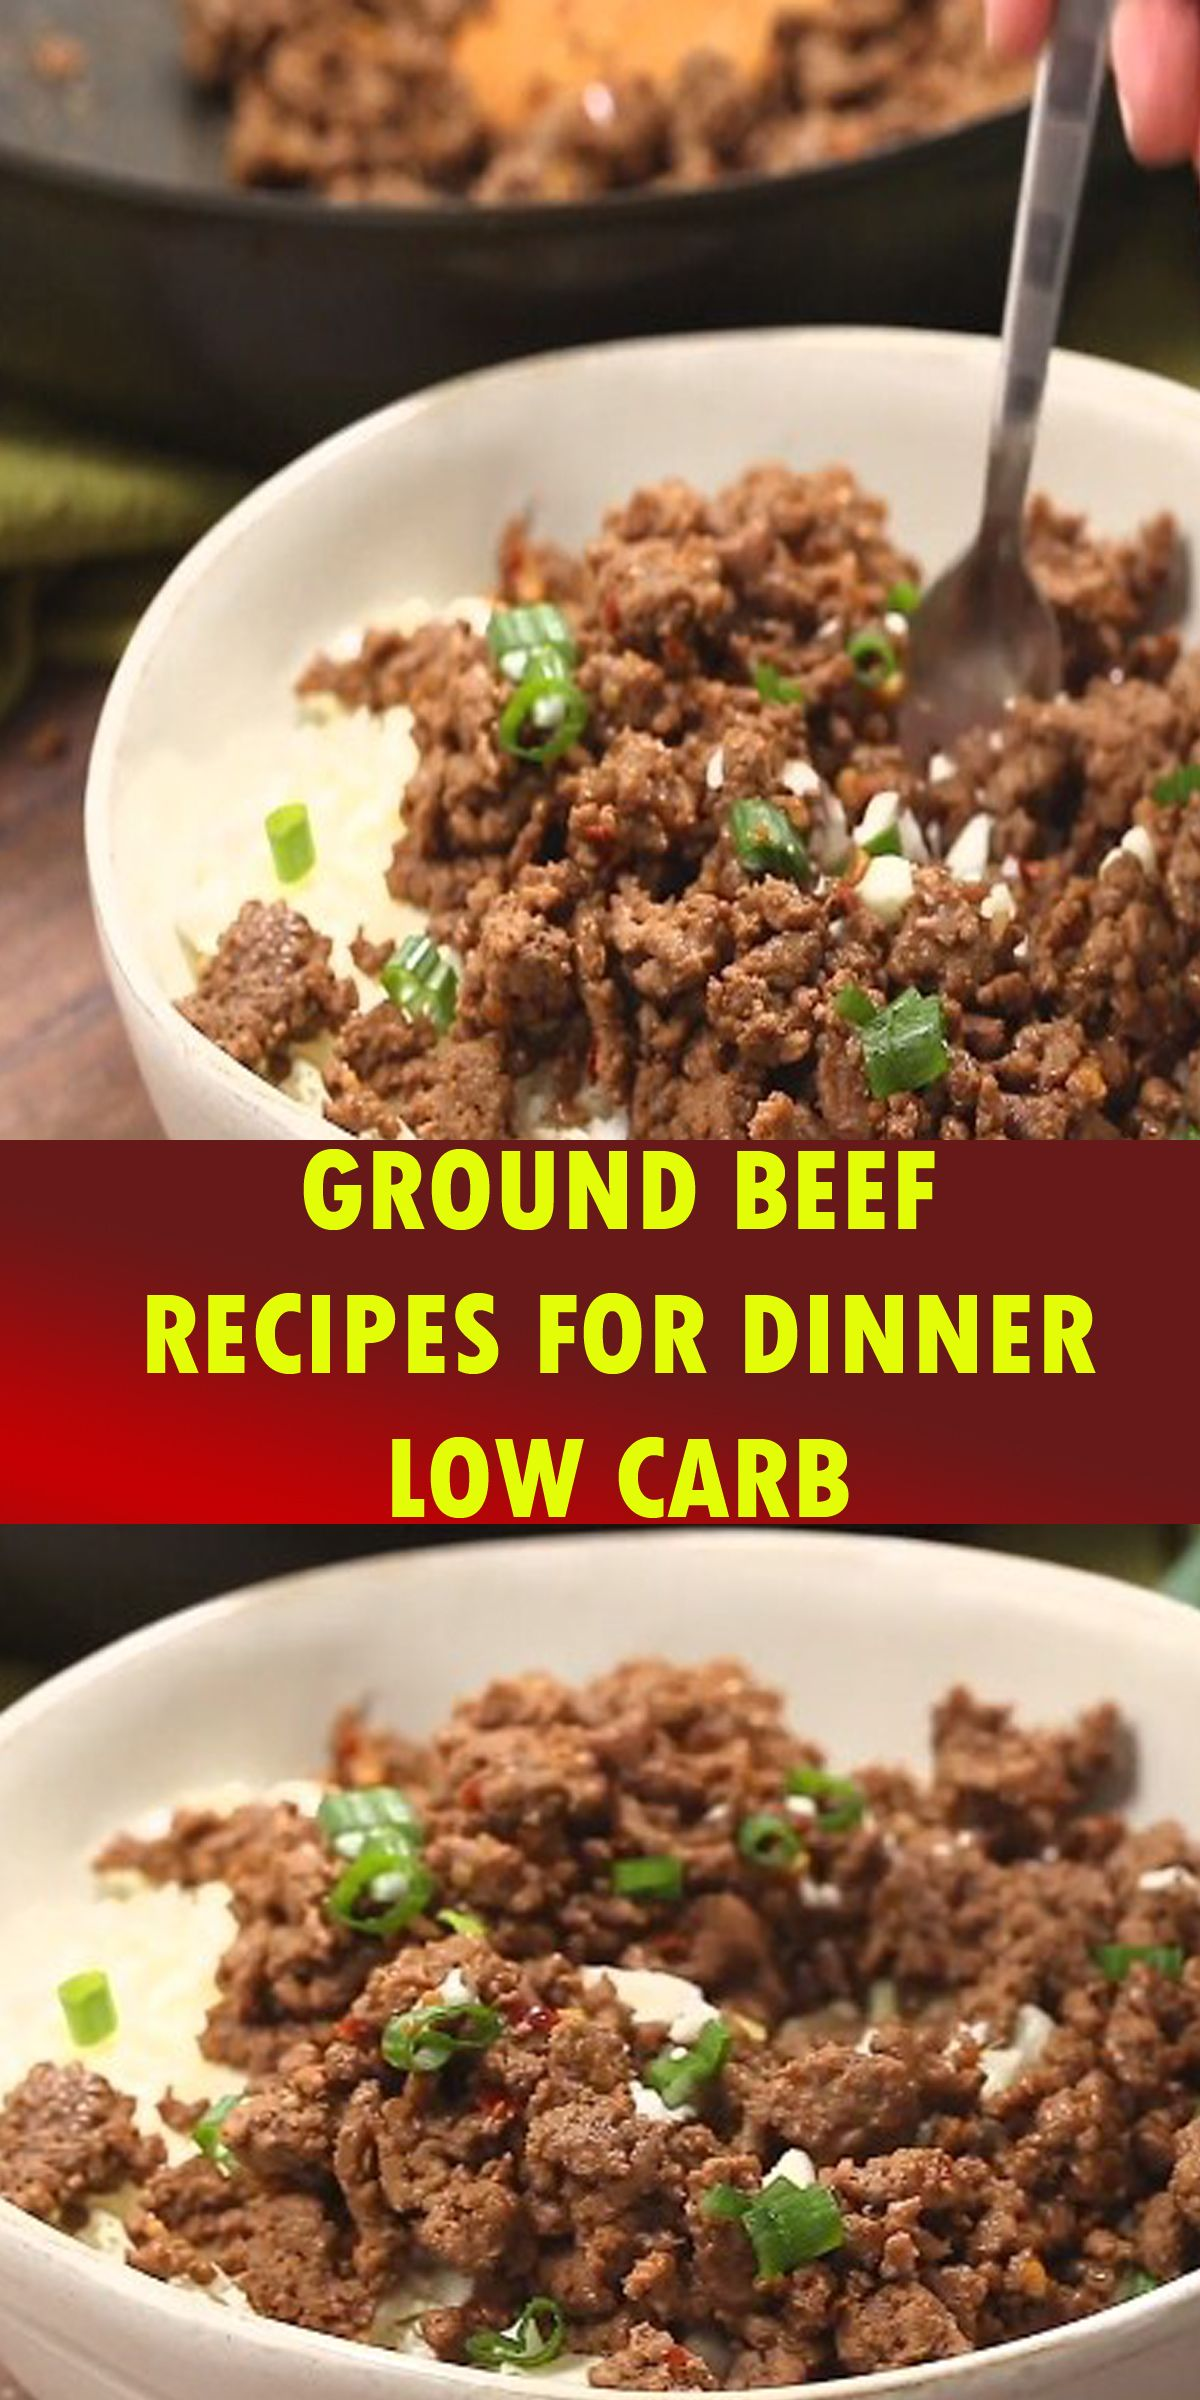 GROUND BEEF RECIPES FOR DINNER LOW CARB | Ground beef ...